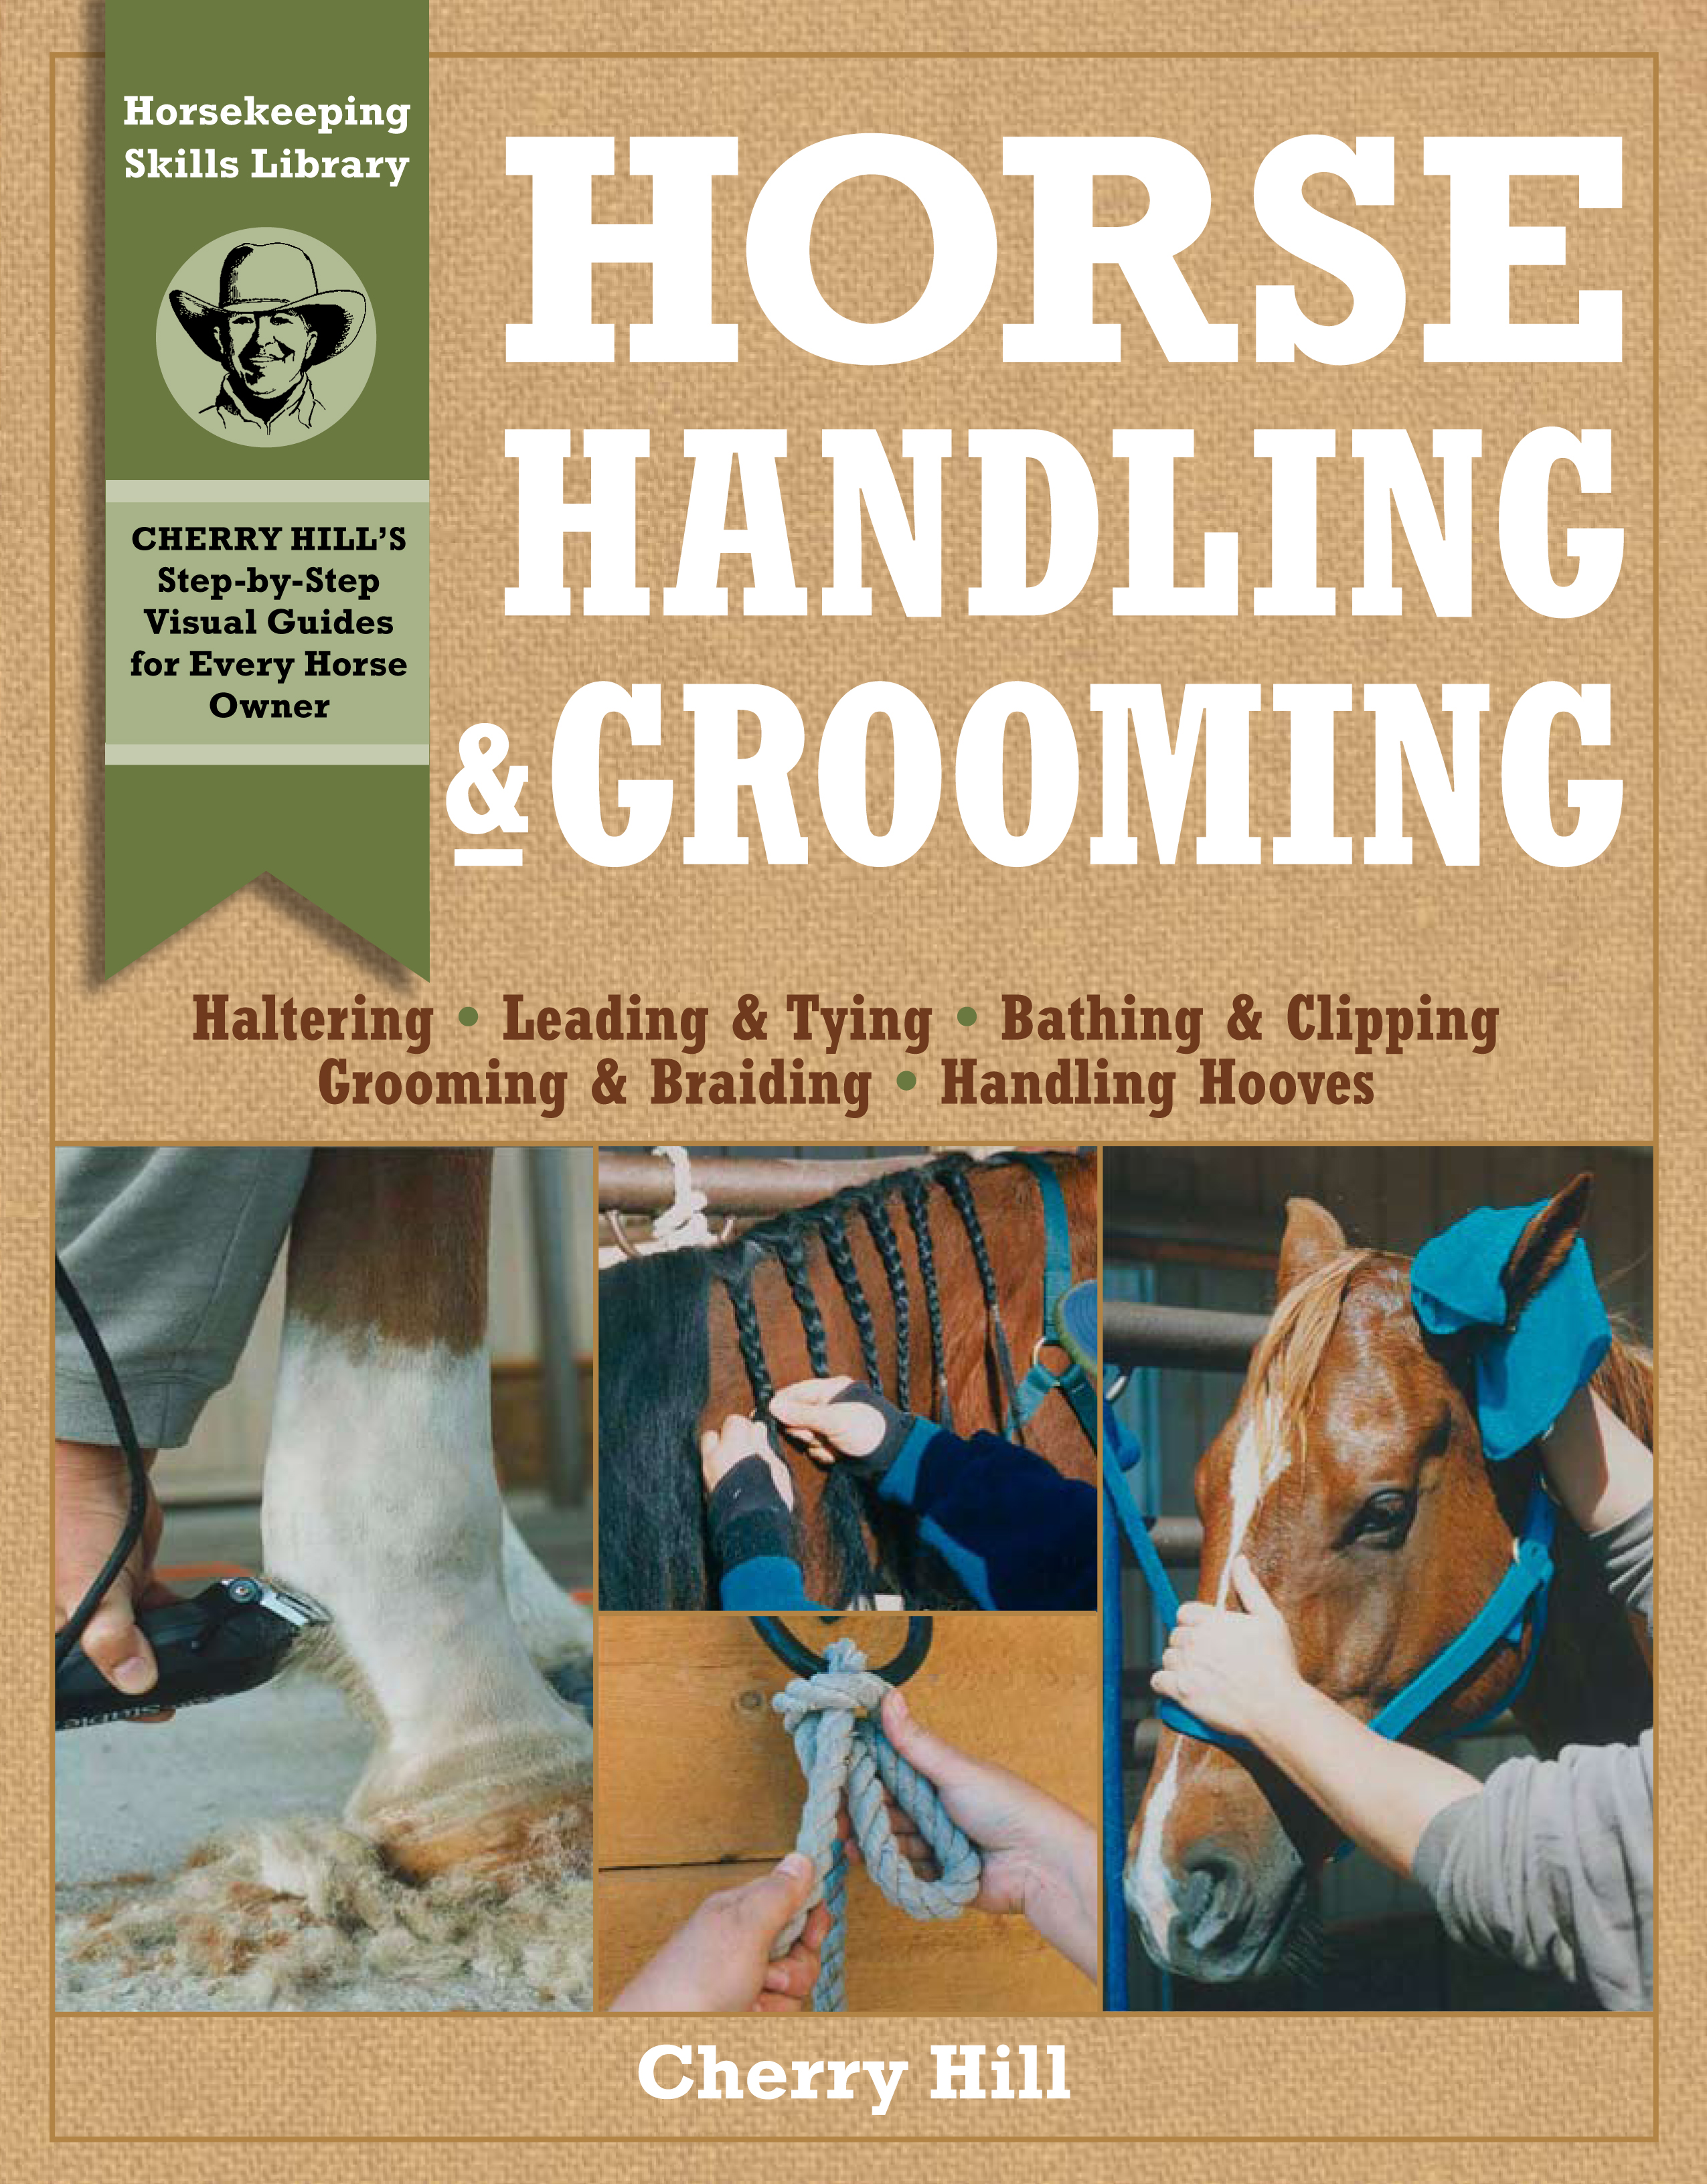 Horse Handling & Grooming Haltering * Leading & Tying * Bathing & Clipping * Grooming & Braiding * Handling Hooves - Cherry Hill